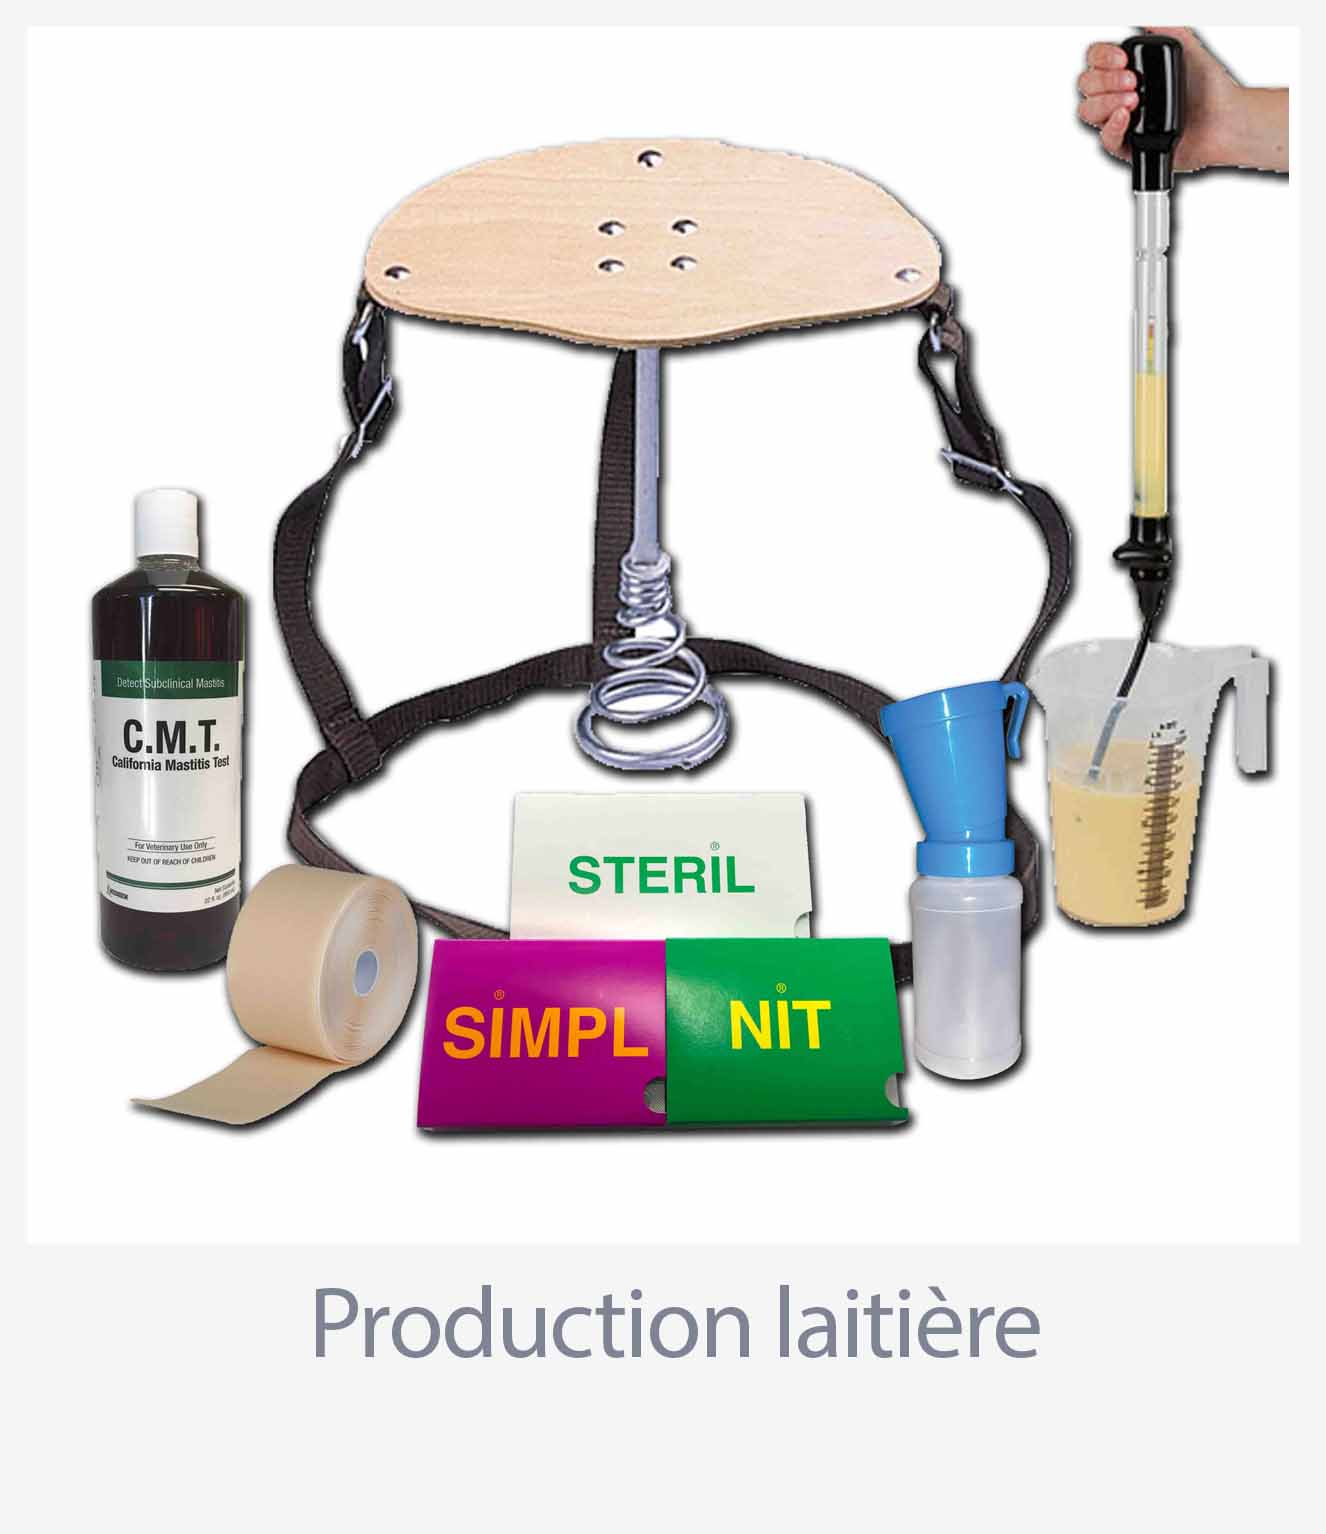 Production laitière